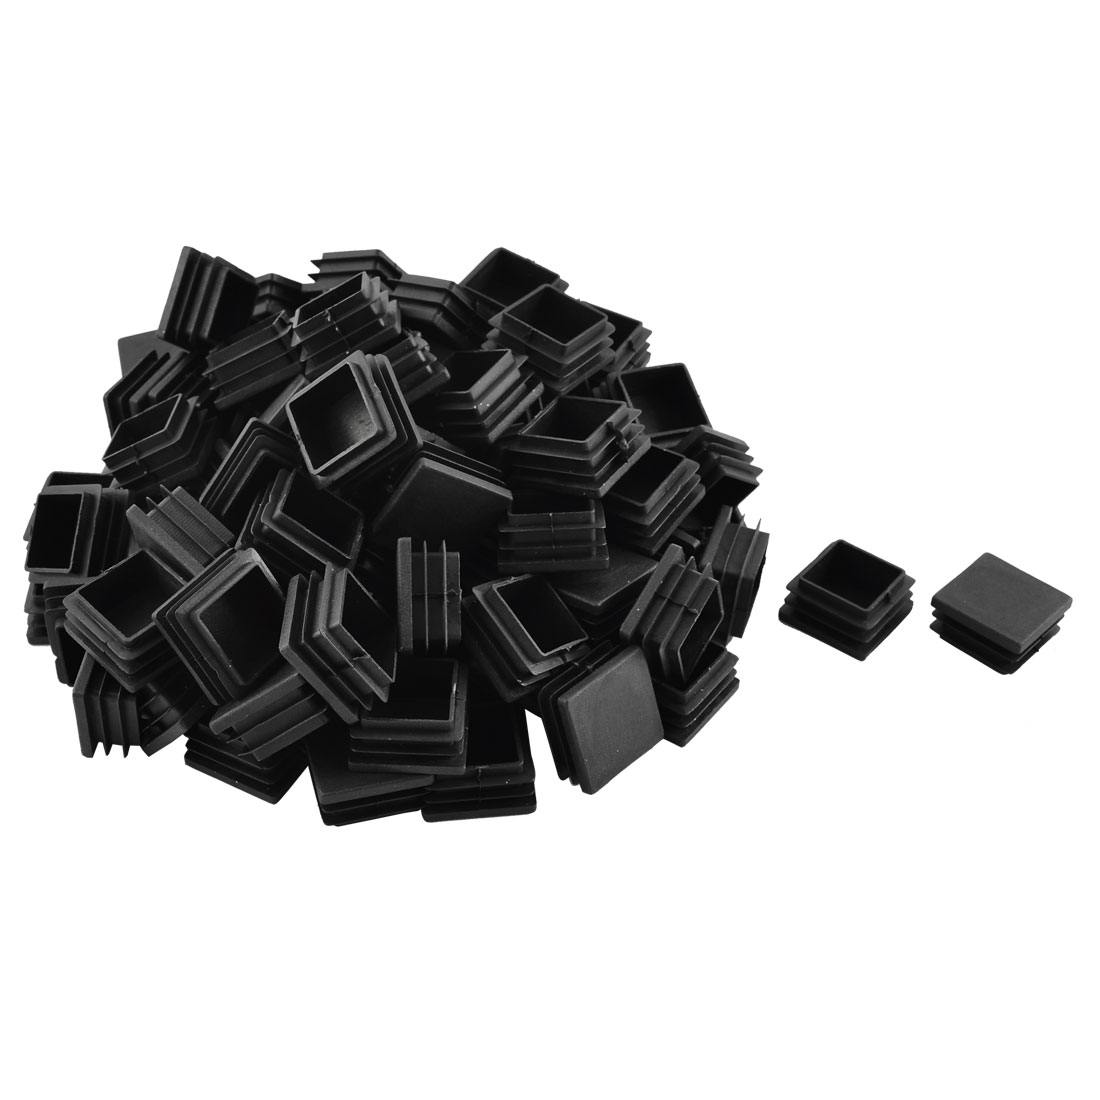 Home Office Plastic Square Shaped Furniture Table Chair Leg Feet Tube Insert Black 100 Pcs